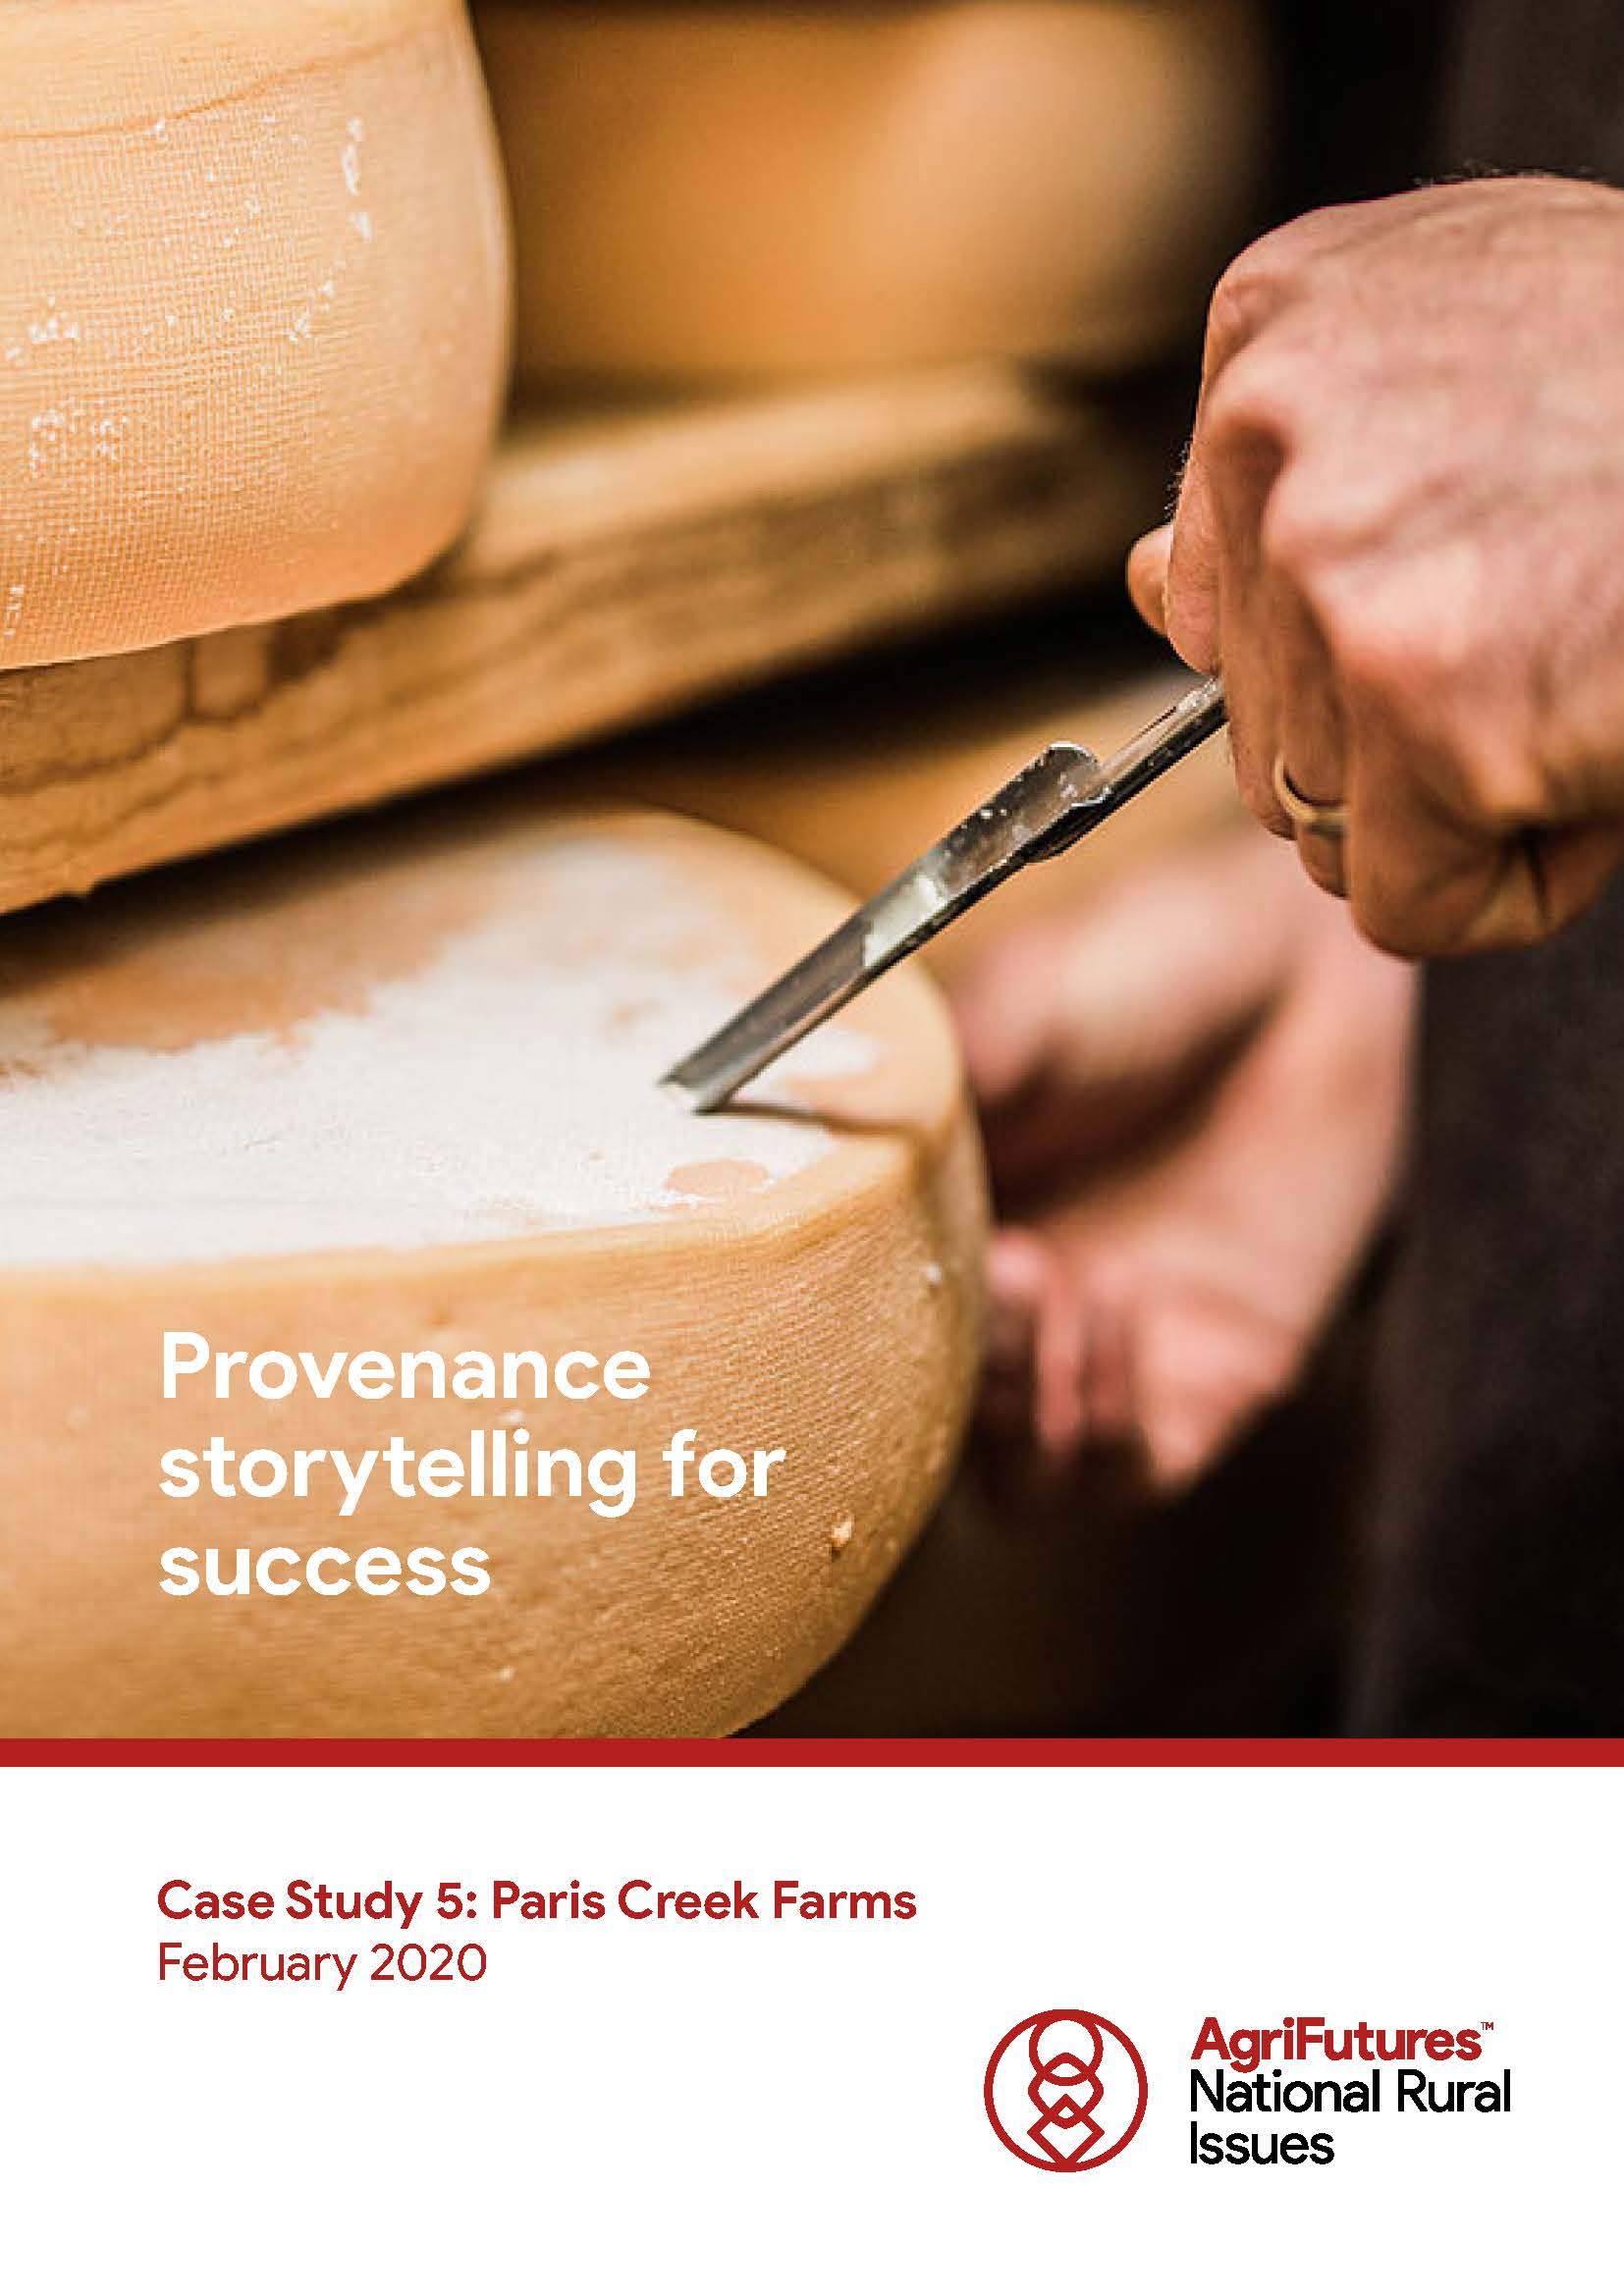 Case study 5: Paris Creek Farms - image